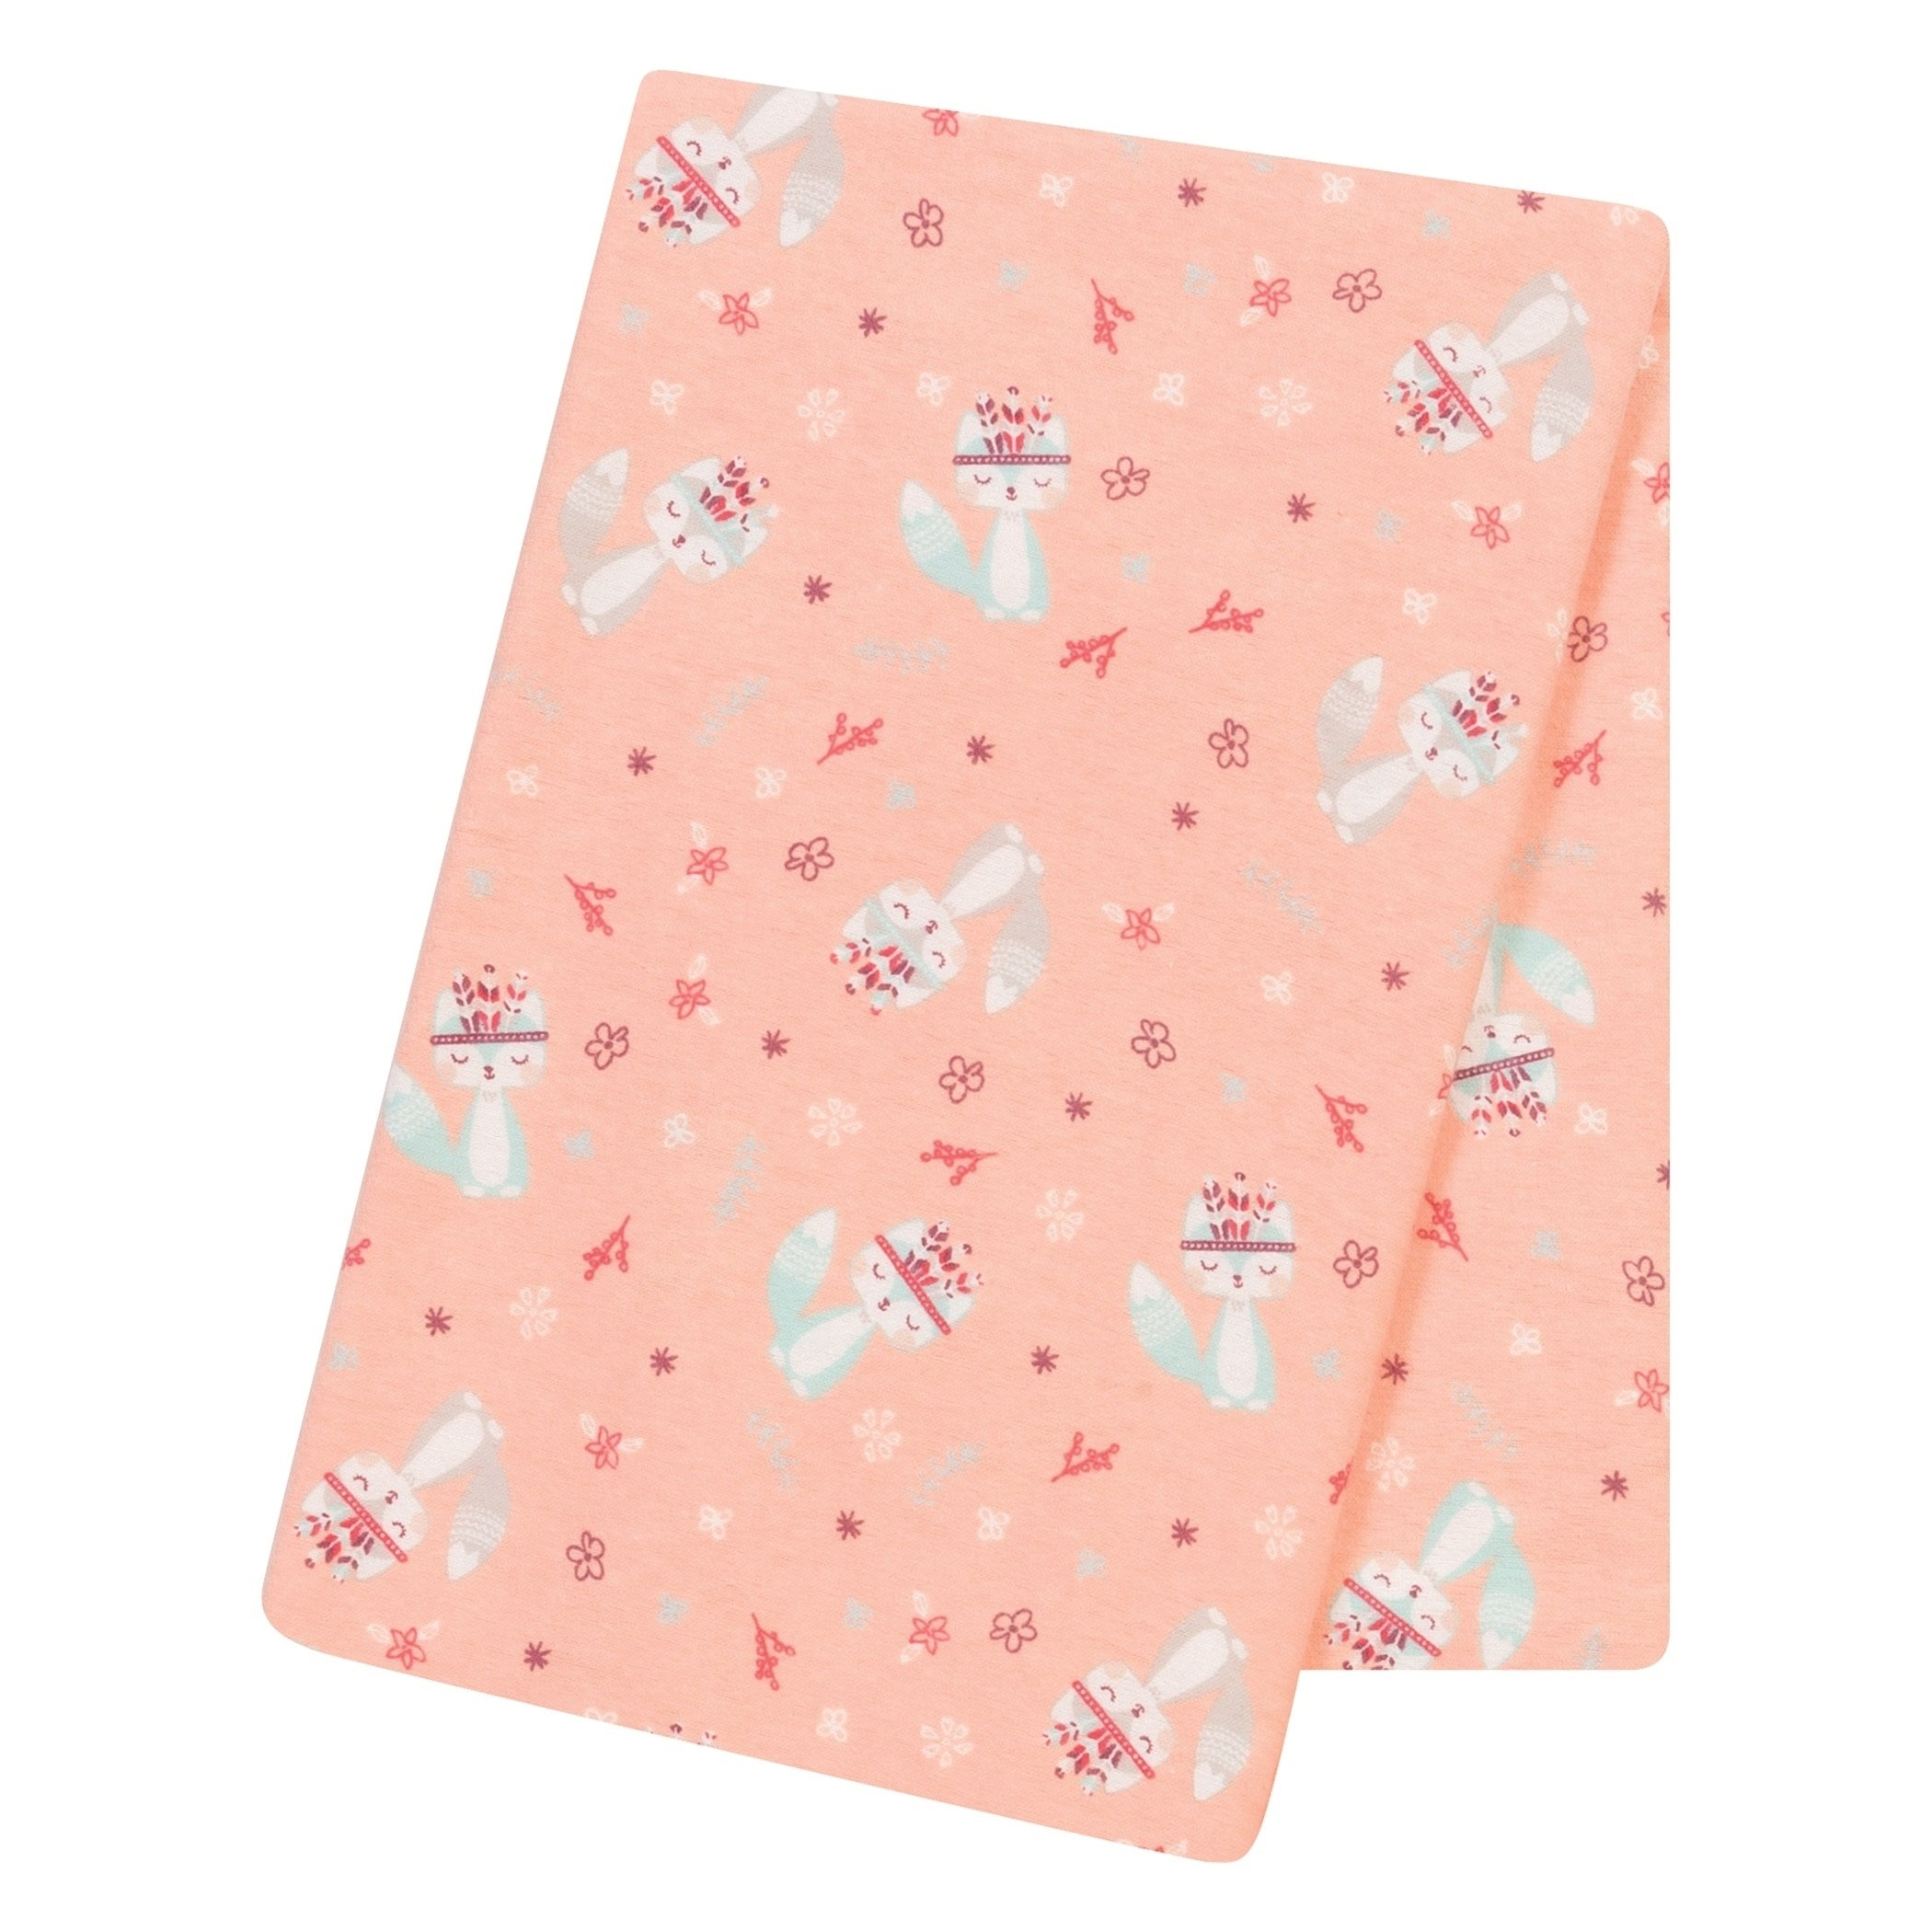 AM 1 Piece Baby Girls Coral Pink Fox and Flowers Deluxe Flannel Crib Blanket, Newborn Salmon Paisley Nursery Bedding, Floral Forest Woods Nature Animals Swaddle Cozy Soft Cute Adorable, Cotton